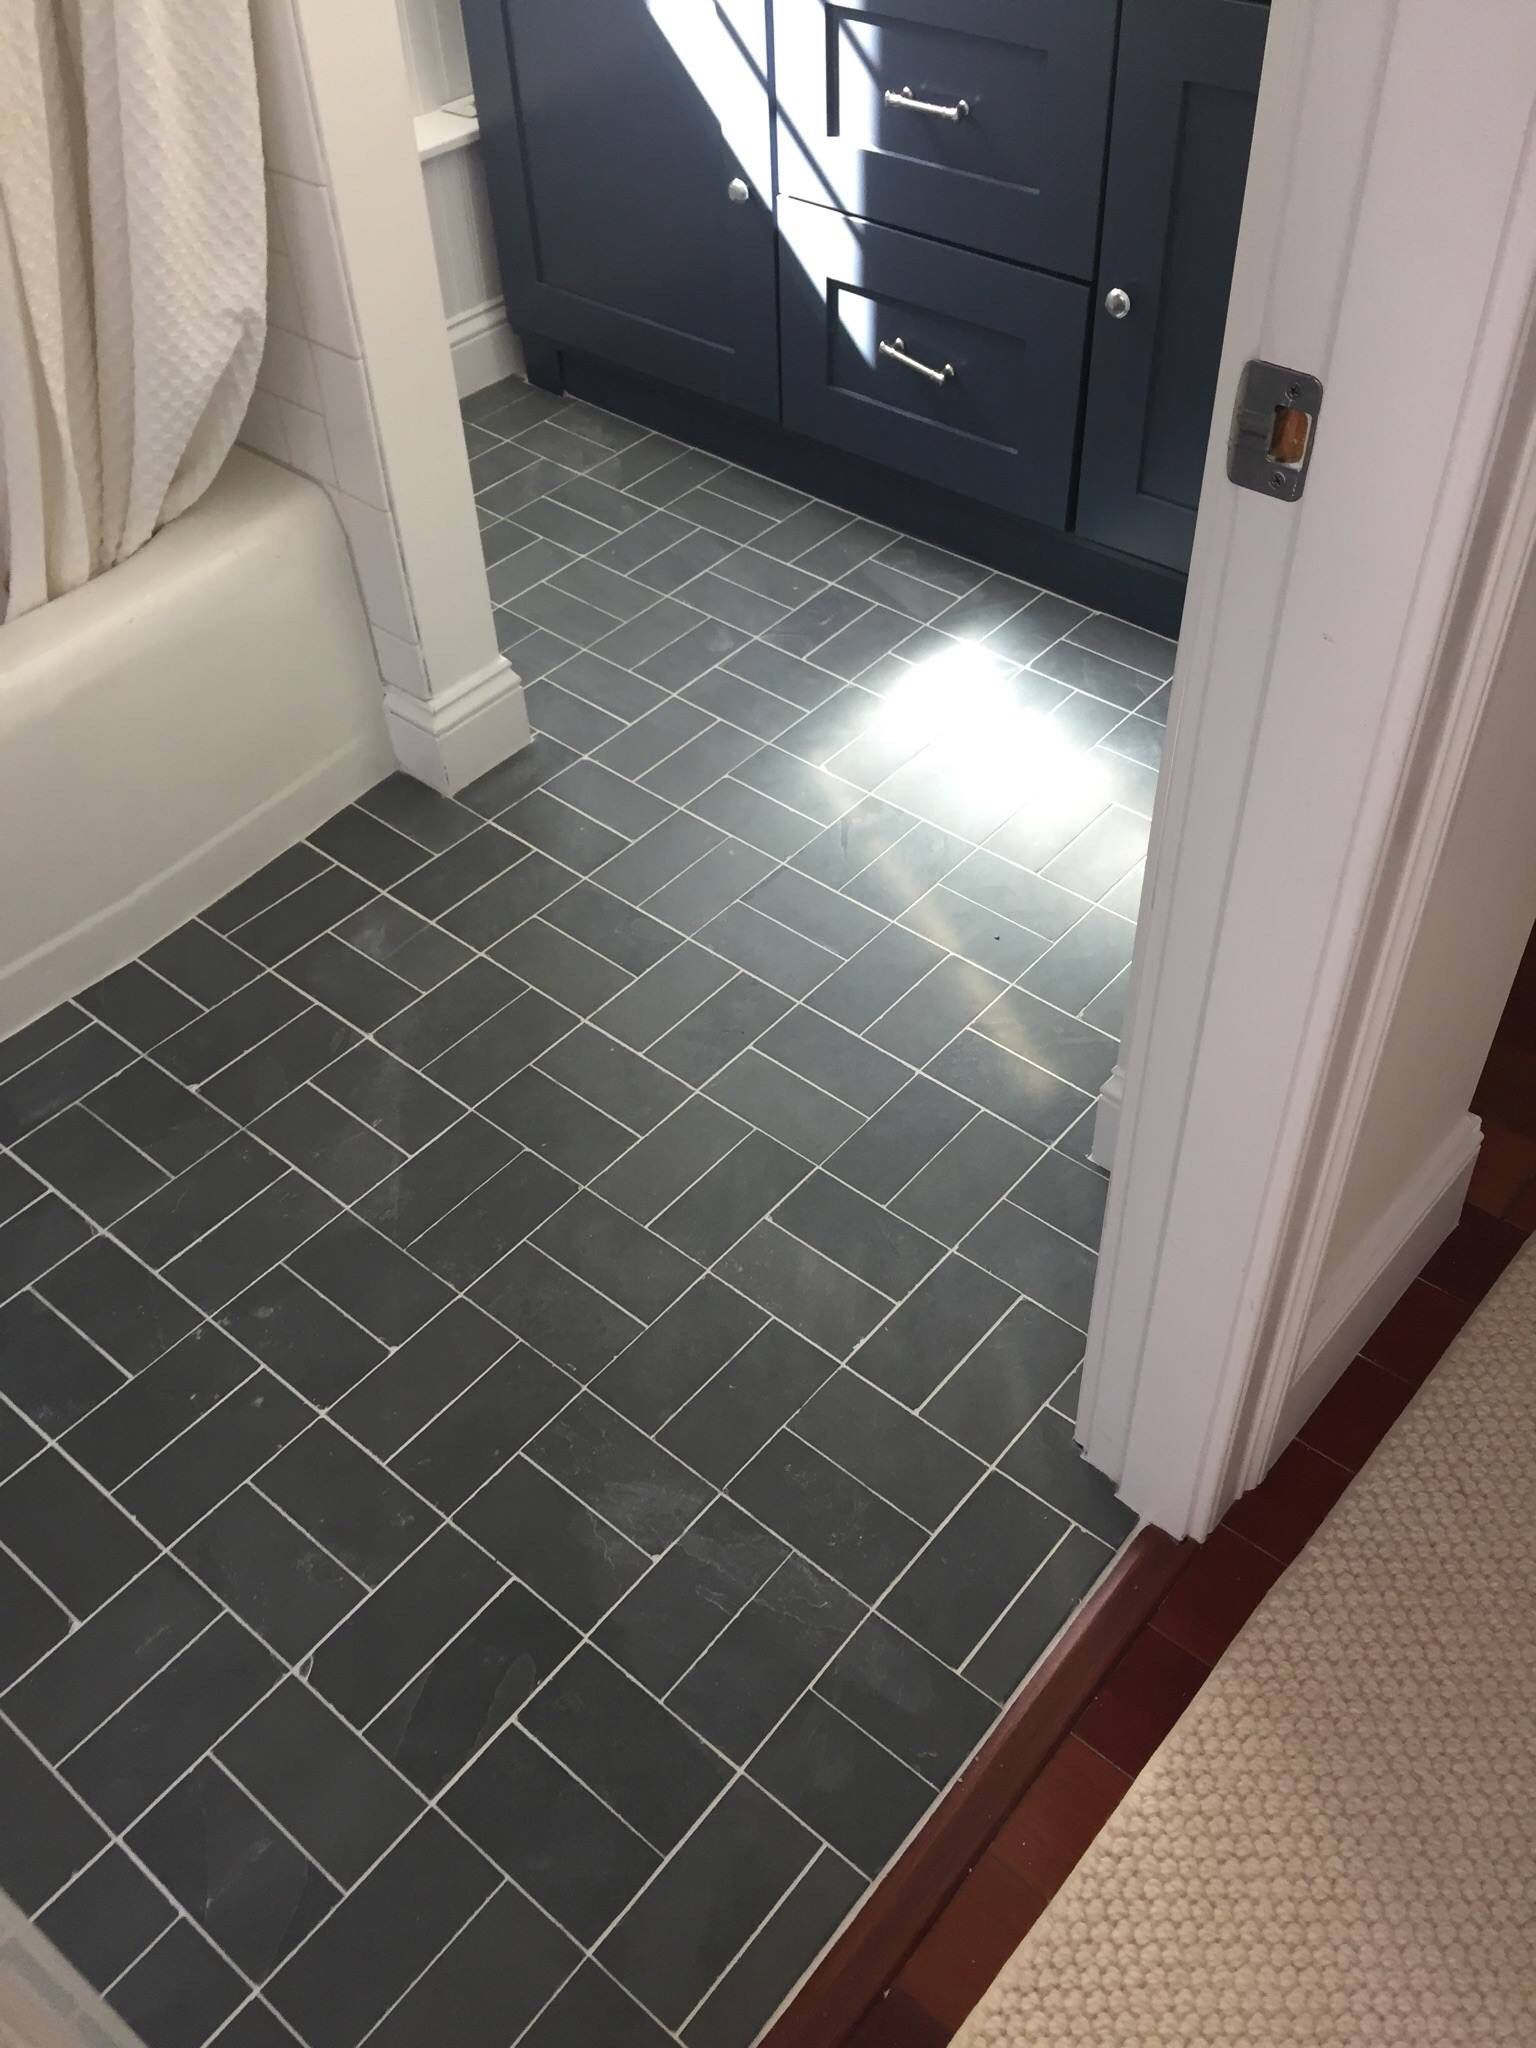 3x6 Brazilian Black Slate Bathroom Floor With Bright White Grout